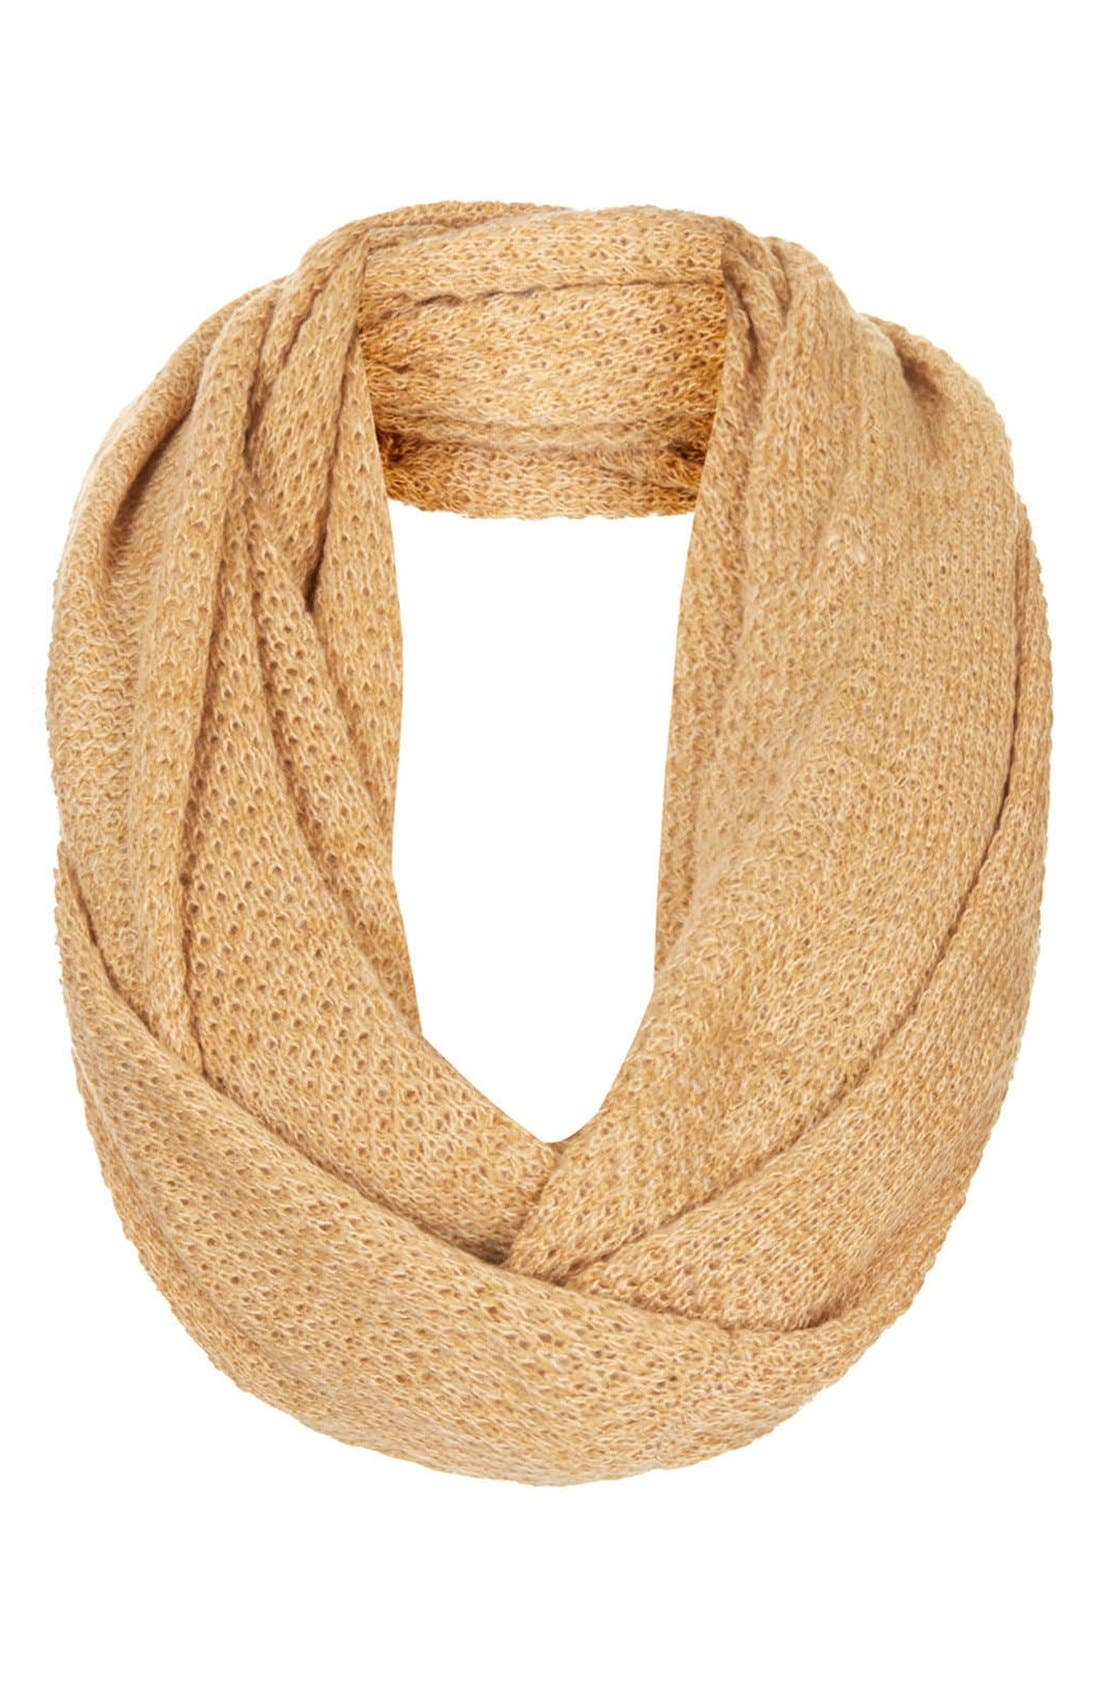 Basket Stitch Infinity Scarf,                         Main,                         color, 252